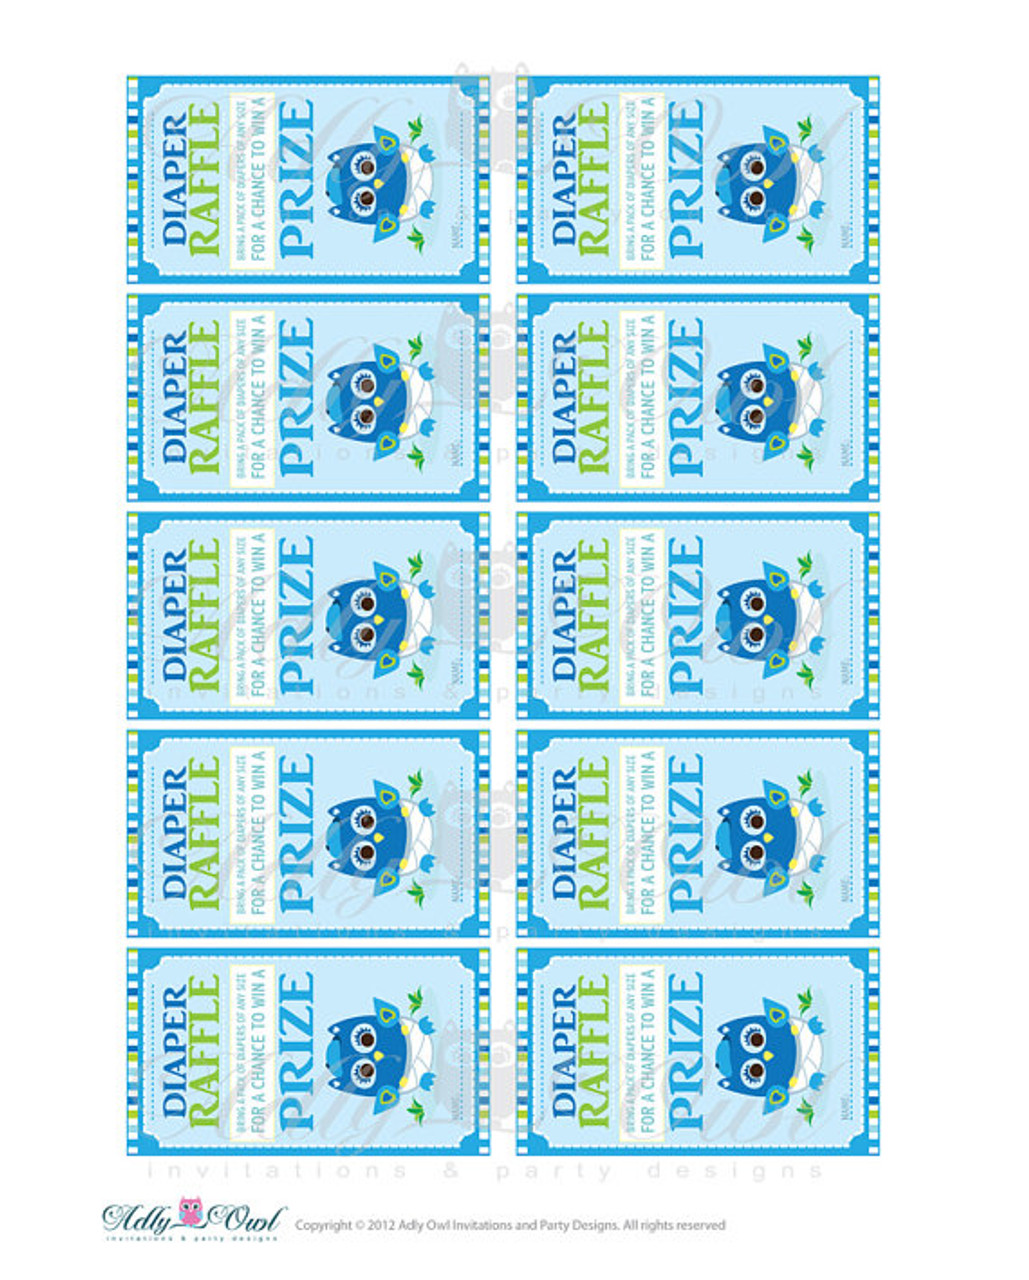 picture regarding Diaper Raffle Tickets Printable known as Blue Lime Boy Owl Diaper Raffle Tickets Printables for Child Boys Shower Do-it-yourself - Simply just electronic report - your self print